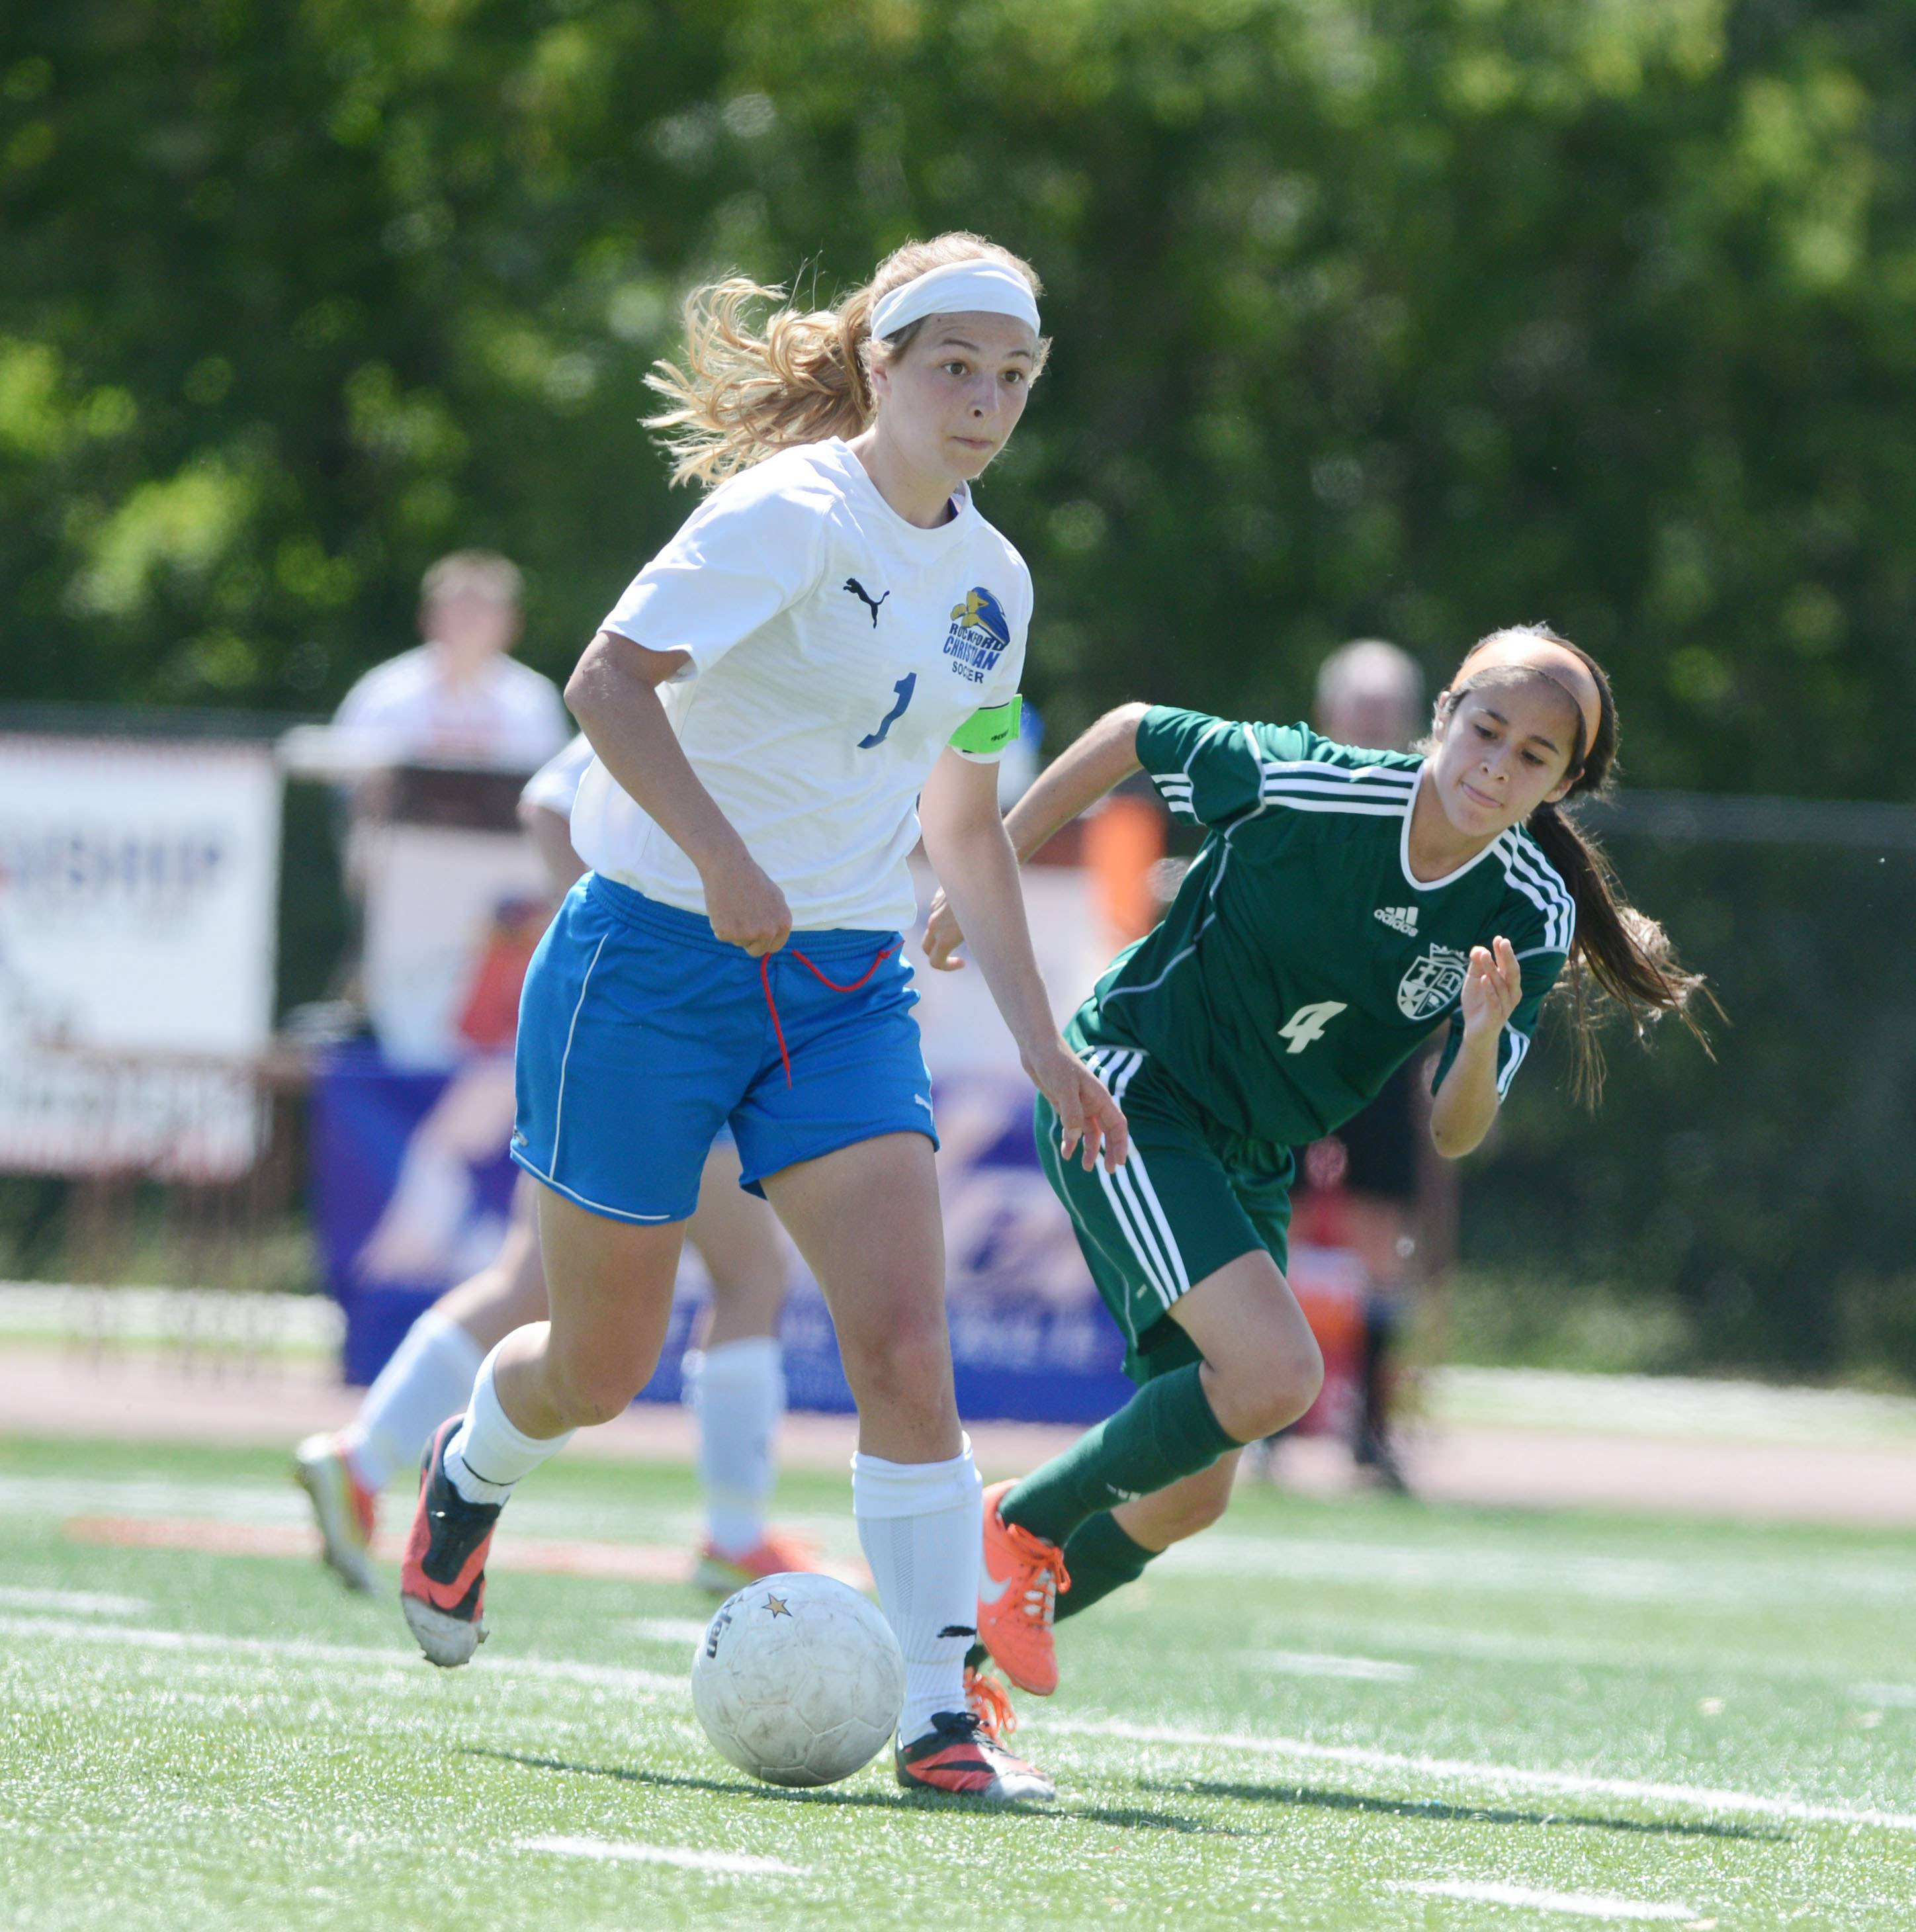 Haley Kittle of Rockford Christian and Monica Ramirez of St. Edward chase the ball during the Class 1A state girls soccer third place game Saturday.